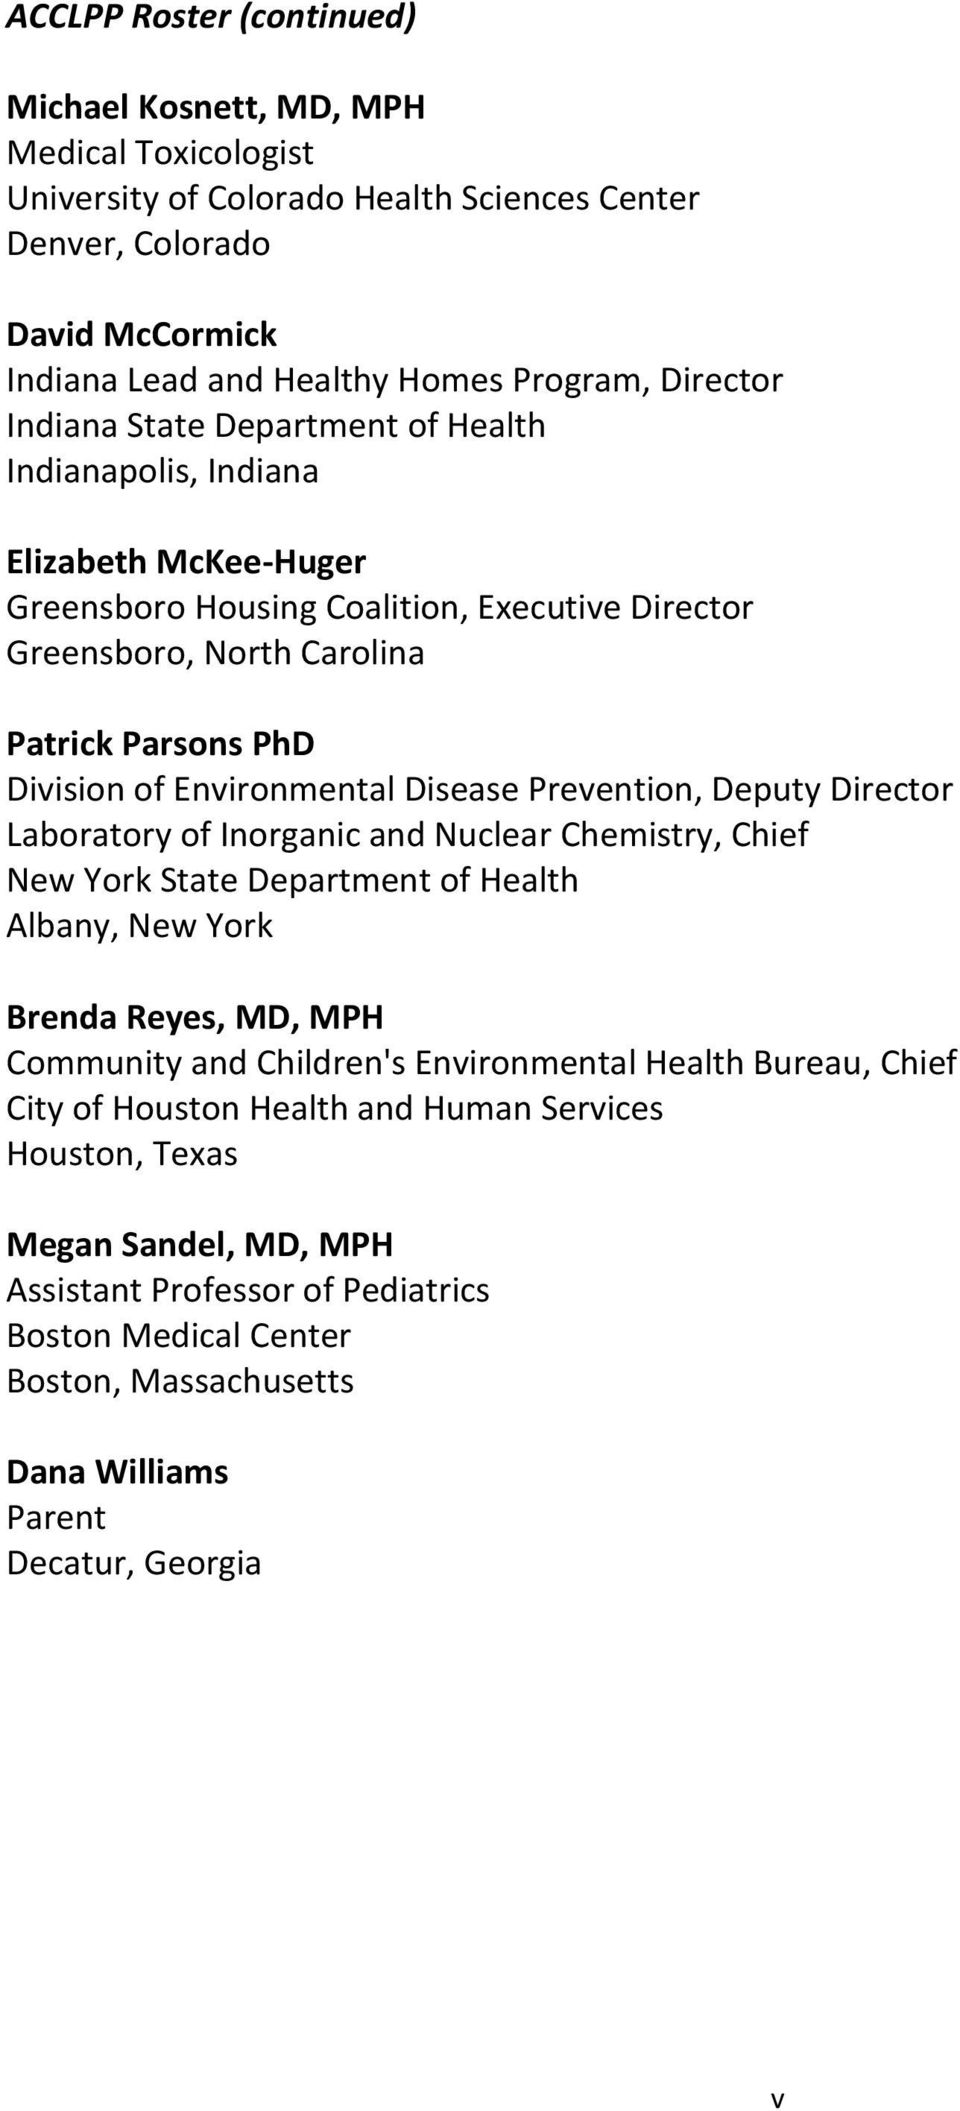 Environmental Disease Prevention, Deputy Director Laboratory of Inorganic and Nuclear Chemistry, Chief New York State Department of Health Albany, New York Brenda Reyes, MD, MPH Community and